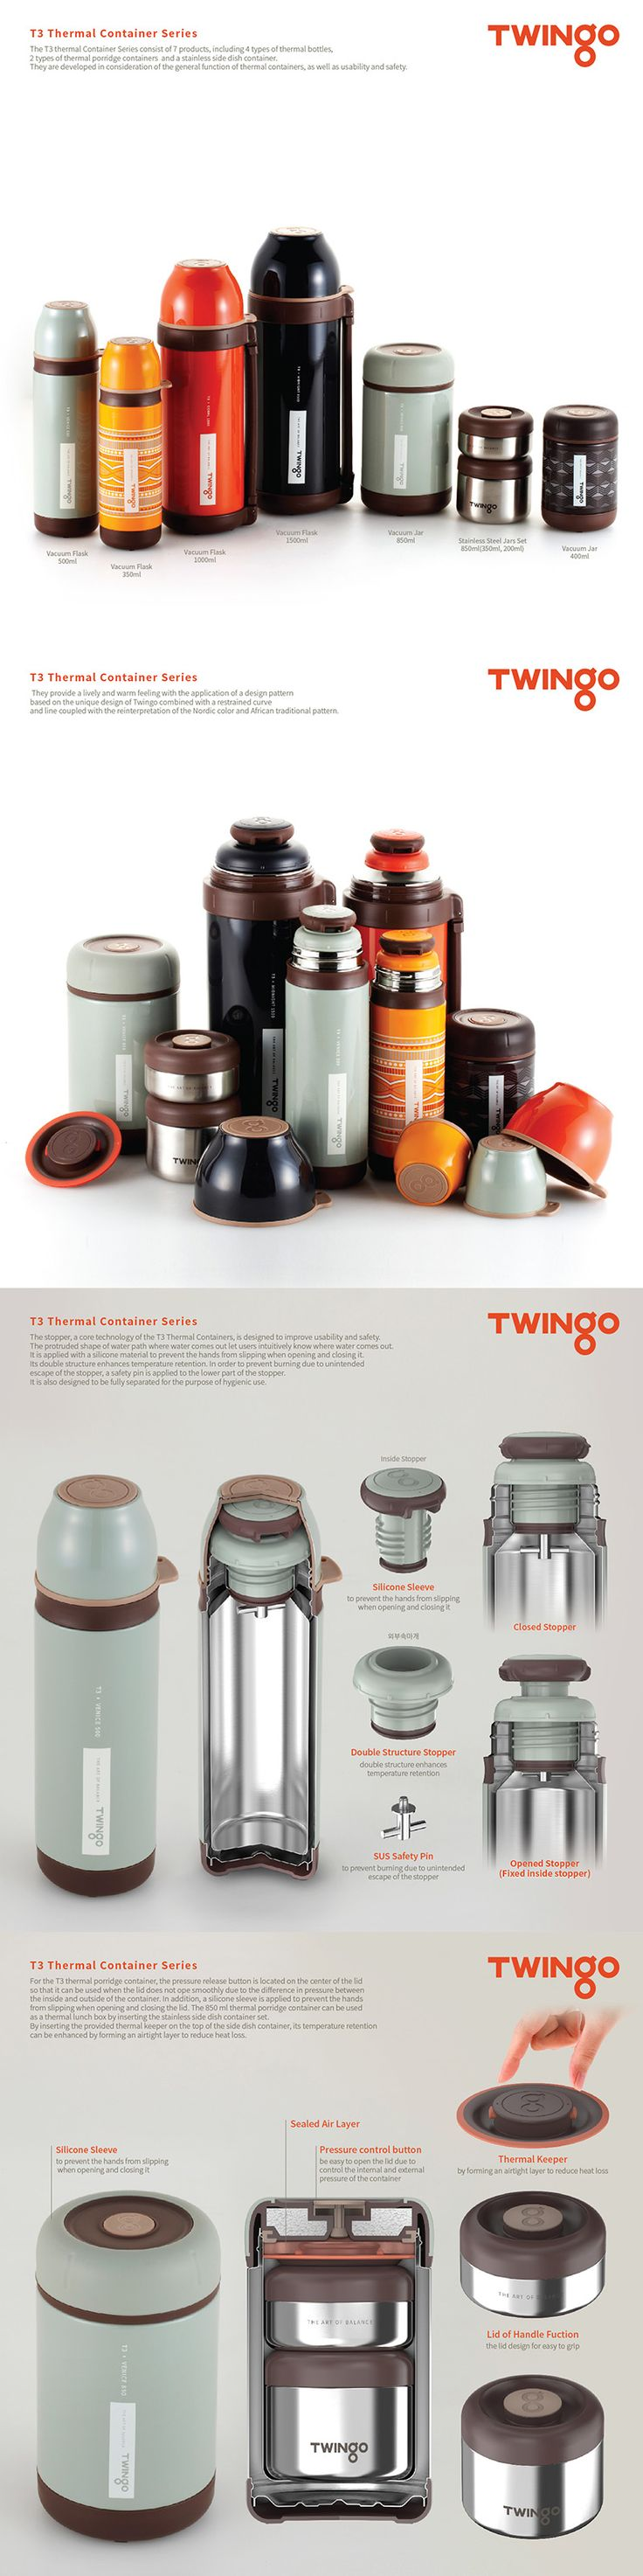 Twingo T3 Thermos, Vacuum Flask, Bottle, Jar, Container, Design